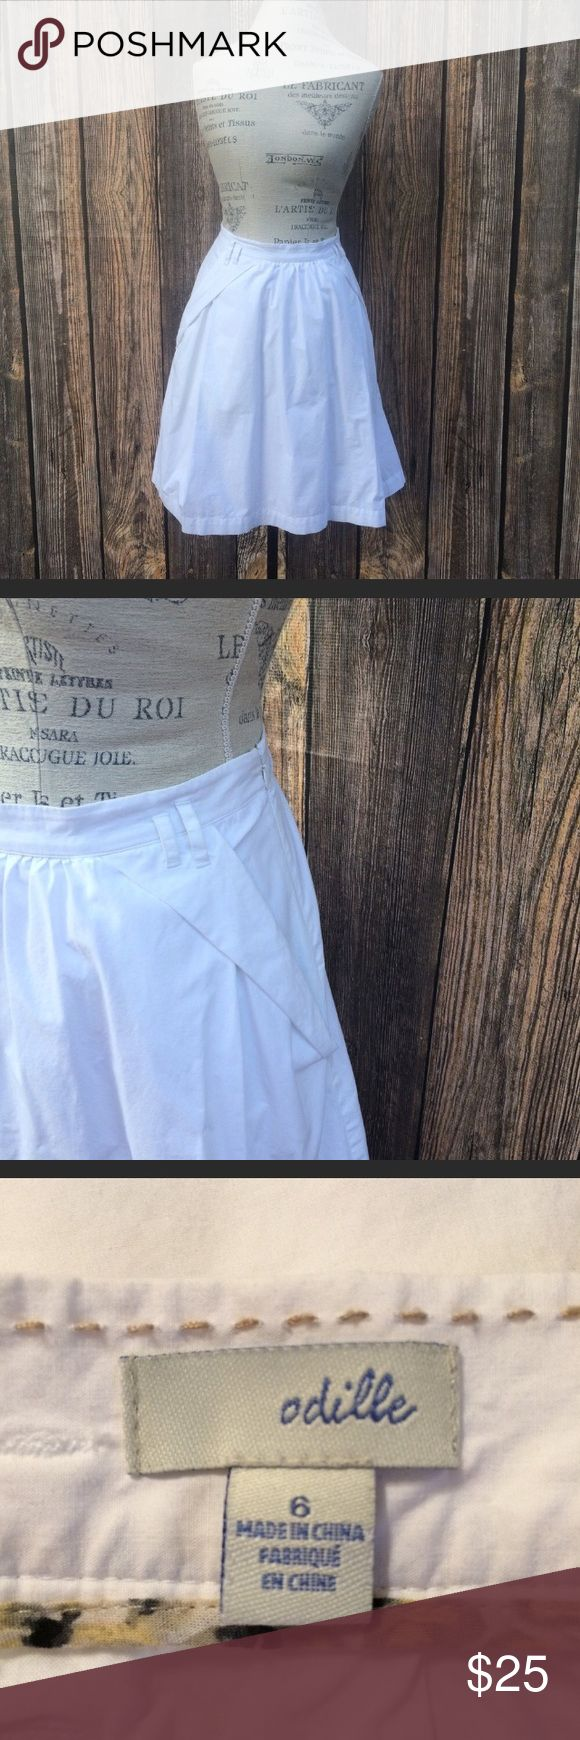 """Anthropologie Odille white high waste skirt size 6 Anthropologie Odille white high waste skirt size 6  🌺 Bundle deals offered. Check out my closet for a variety of sizes/brands 🌺 No trades, and holds or modeling 🌺 All reasonable offers accepted only through the """"offer"""" button. Please no lowball offers. Please submit offer you are willing to pay, as I prefer not to counteroffer.  🌺 God Bless Anthropologie Skirts Mini"""